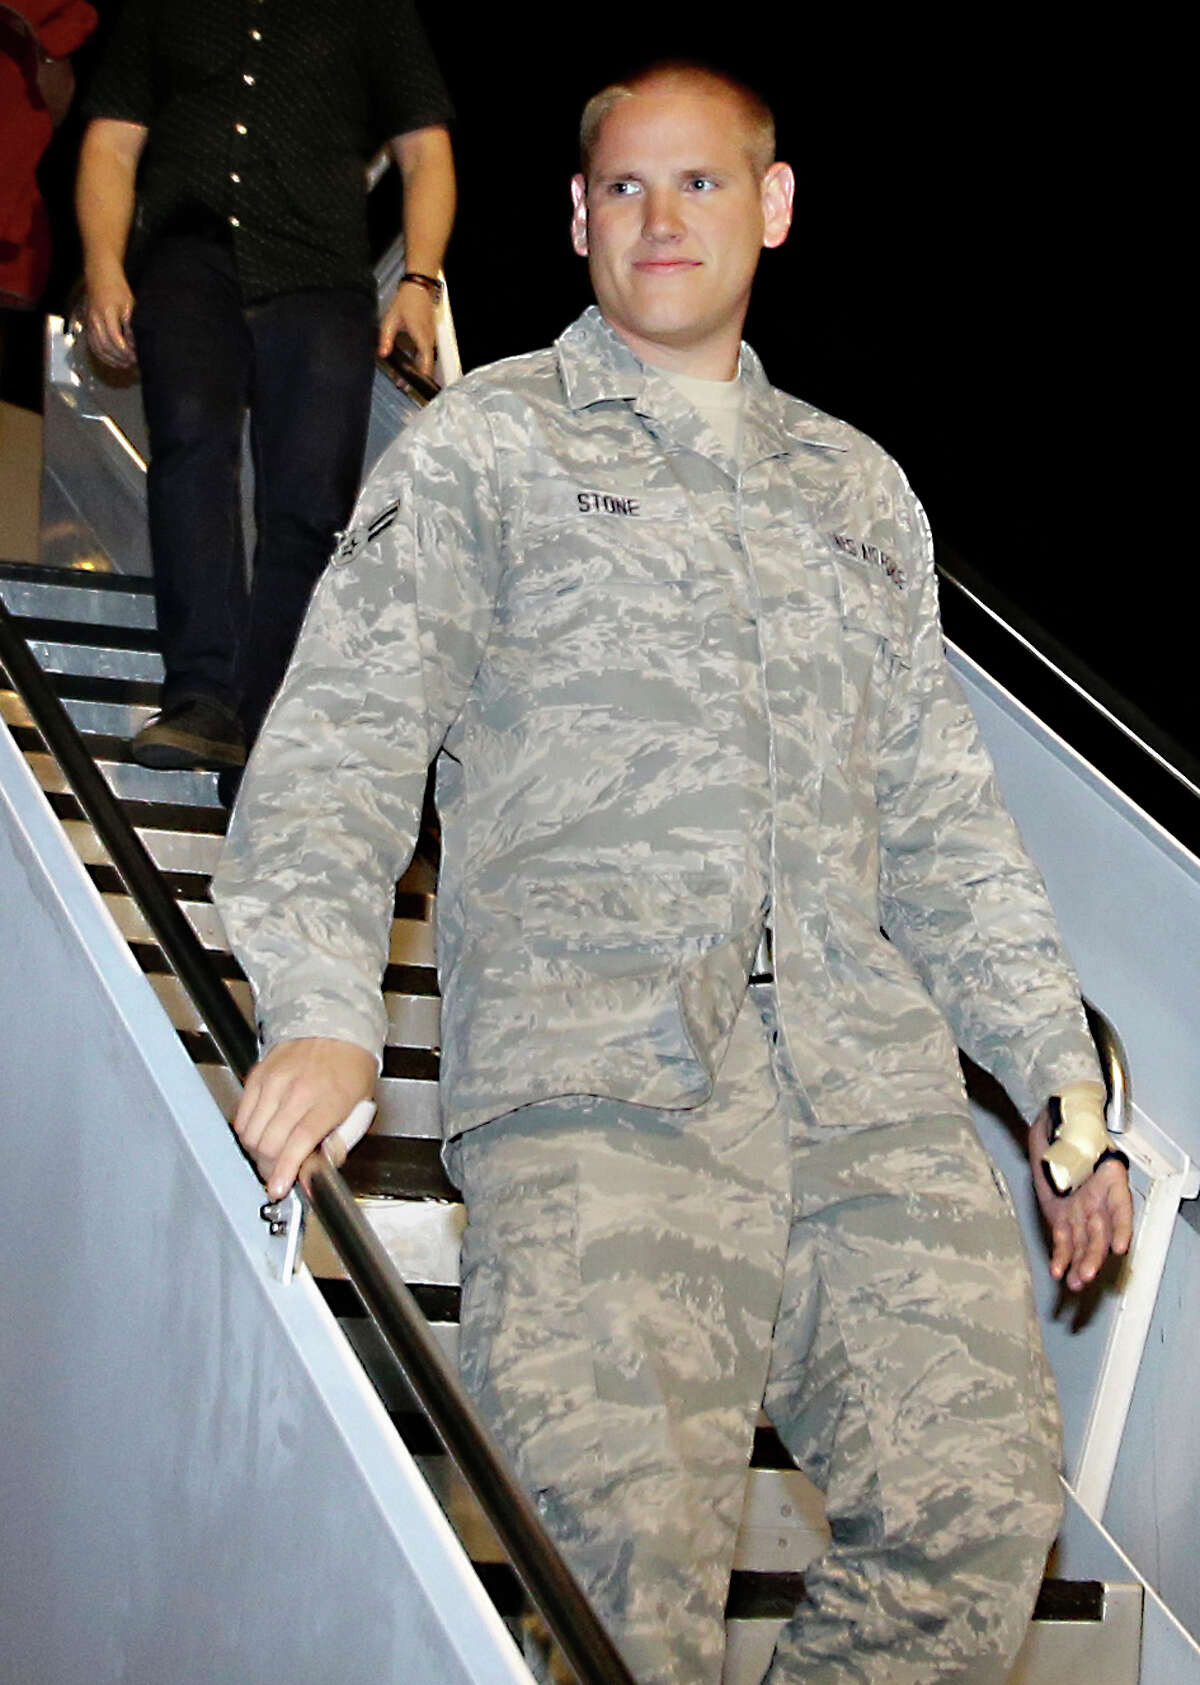 FILE - In this Sept. 3, 2015 file photo, U.S. Air Force Airman 1st Class Spencer Stone, one of three Americans who tackled a heavily armed gunman on a Paris-bound train on Aug. 21, arrives at Travis Air Force Base in Fairfield, Calif. Stone is in stable condition Thursday, Oct. 8, 2015, after being stabbed in Sacramento, Calif., according to an Air Force spokesman. (AP Photo/Rich Pedroncelli, File) ORG XMIT: NY111